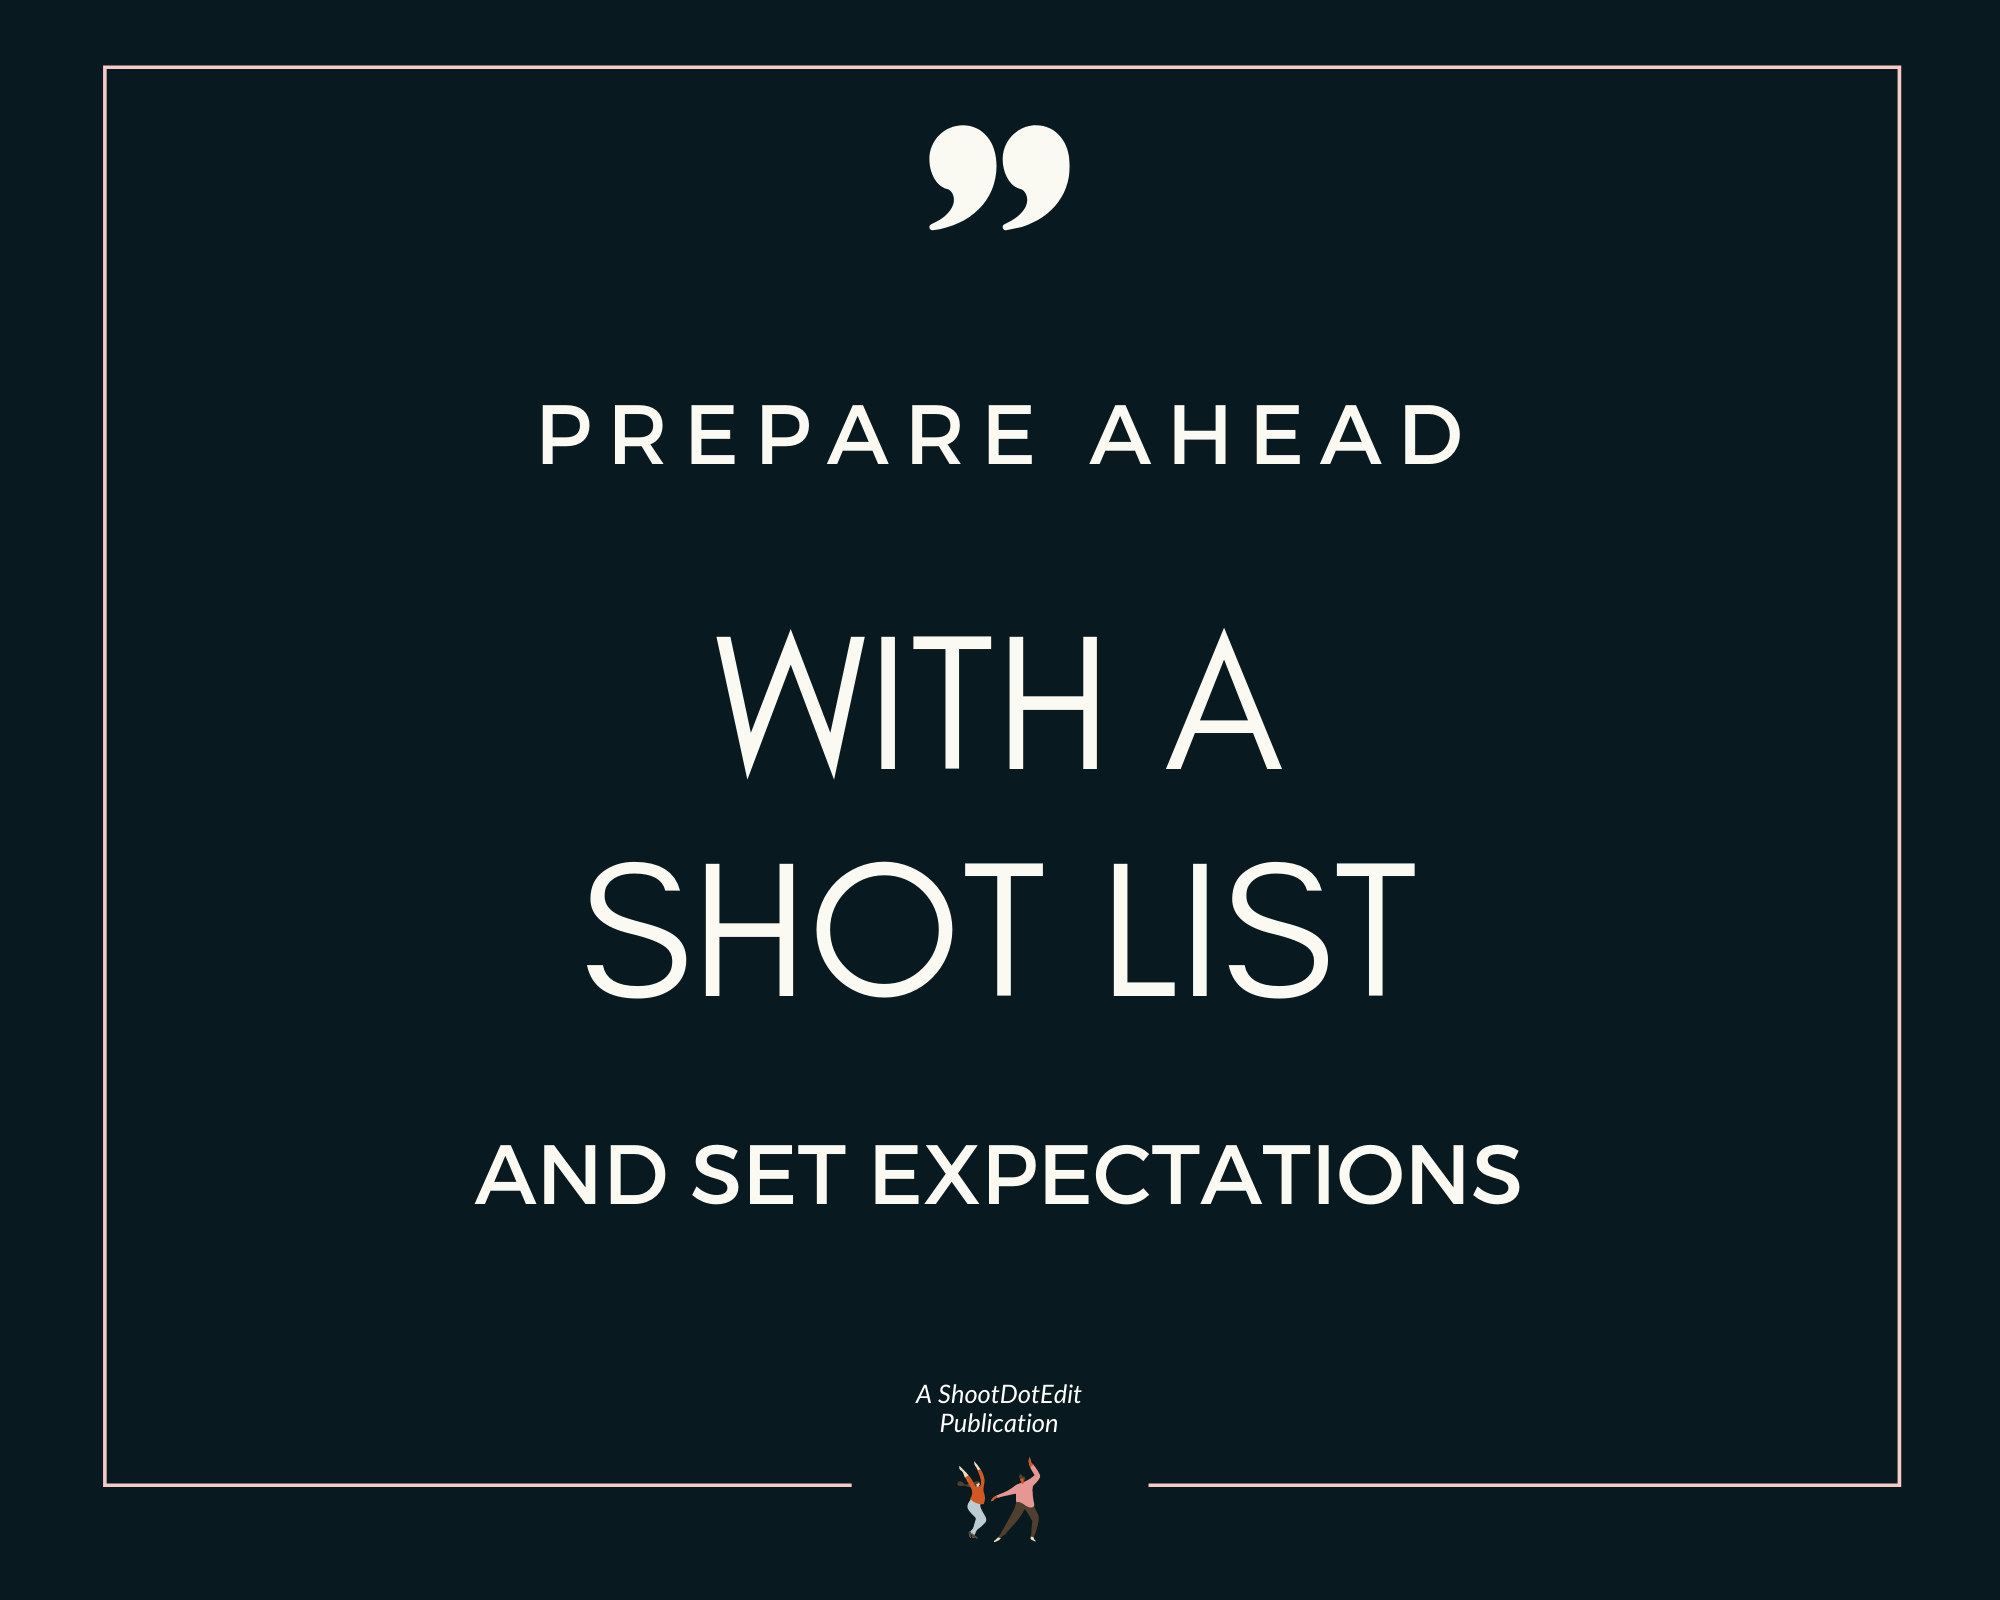 Infographic stating prepare ahead with a shot list and set expectations